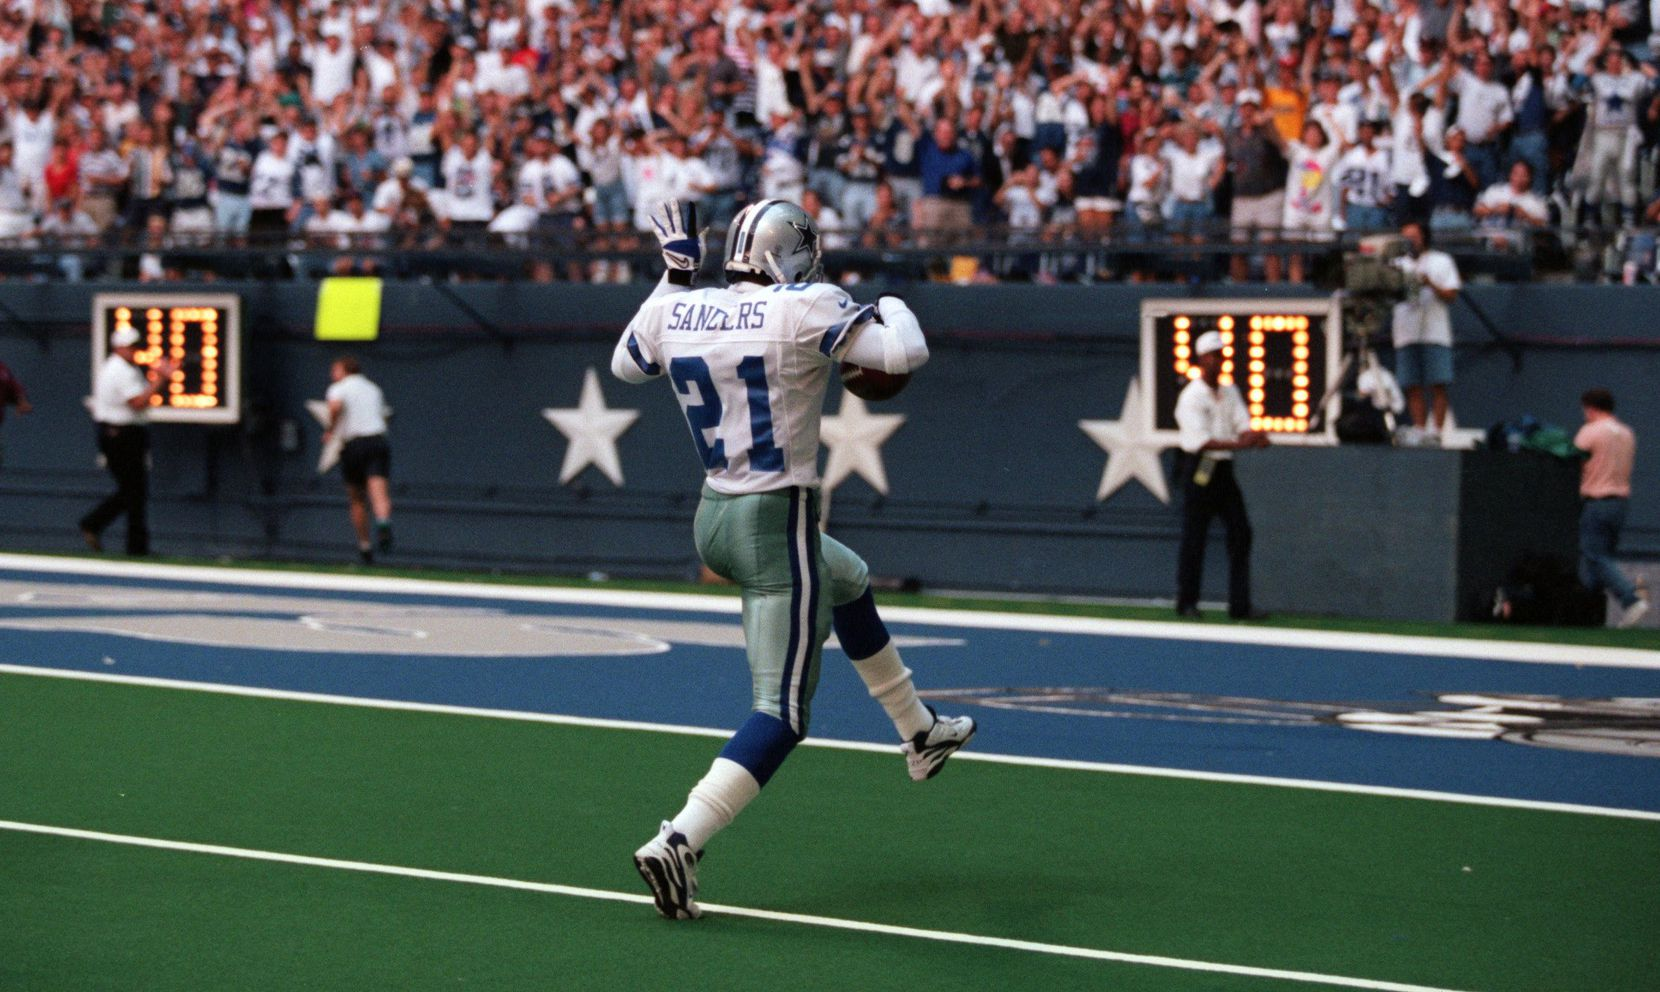 FILE - Cowboys cornerback Deion Sanders (21) celebrates on his way to the end zone after recovering a fumble during a game against the Colts on Sunday, Sept. 15, 1996, at Texas Stadium in Irving.